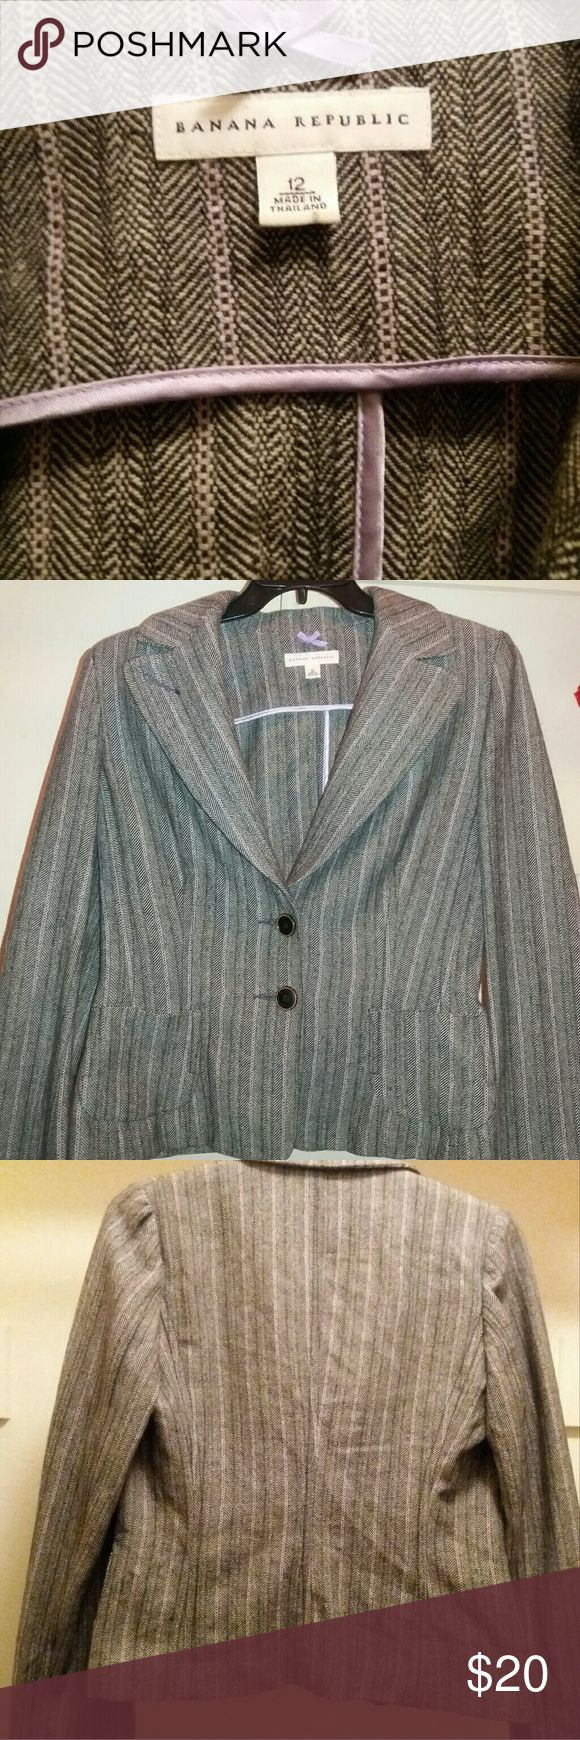 Banana Republic Wool Blazer Colors are black, white, and lavender.  In great preowned conditon. Banana Republic Jackets & Coats Blazers